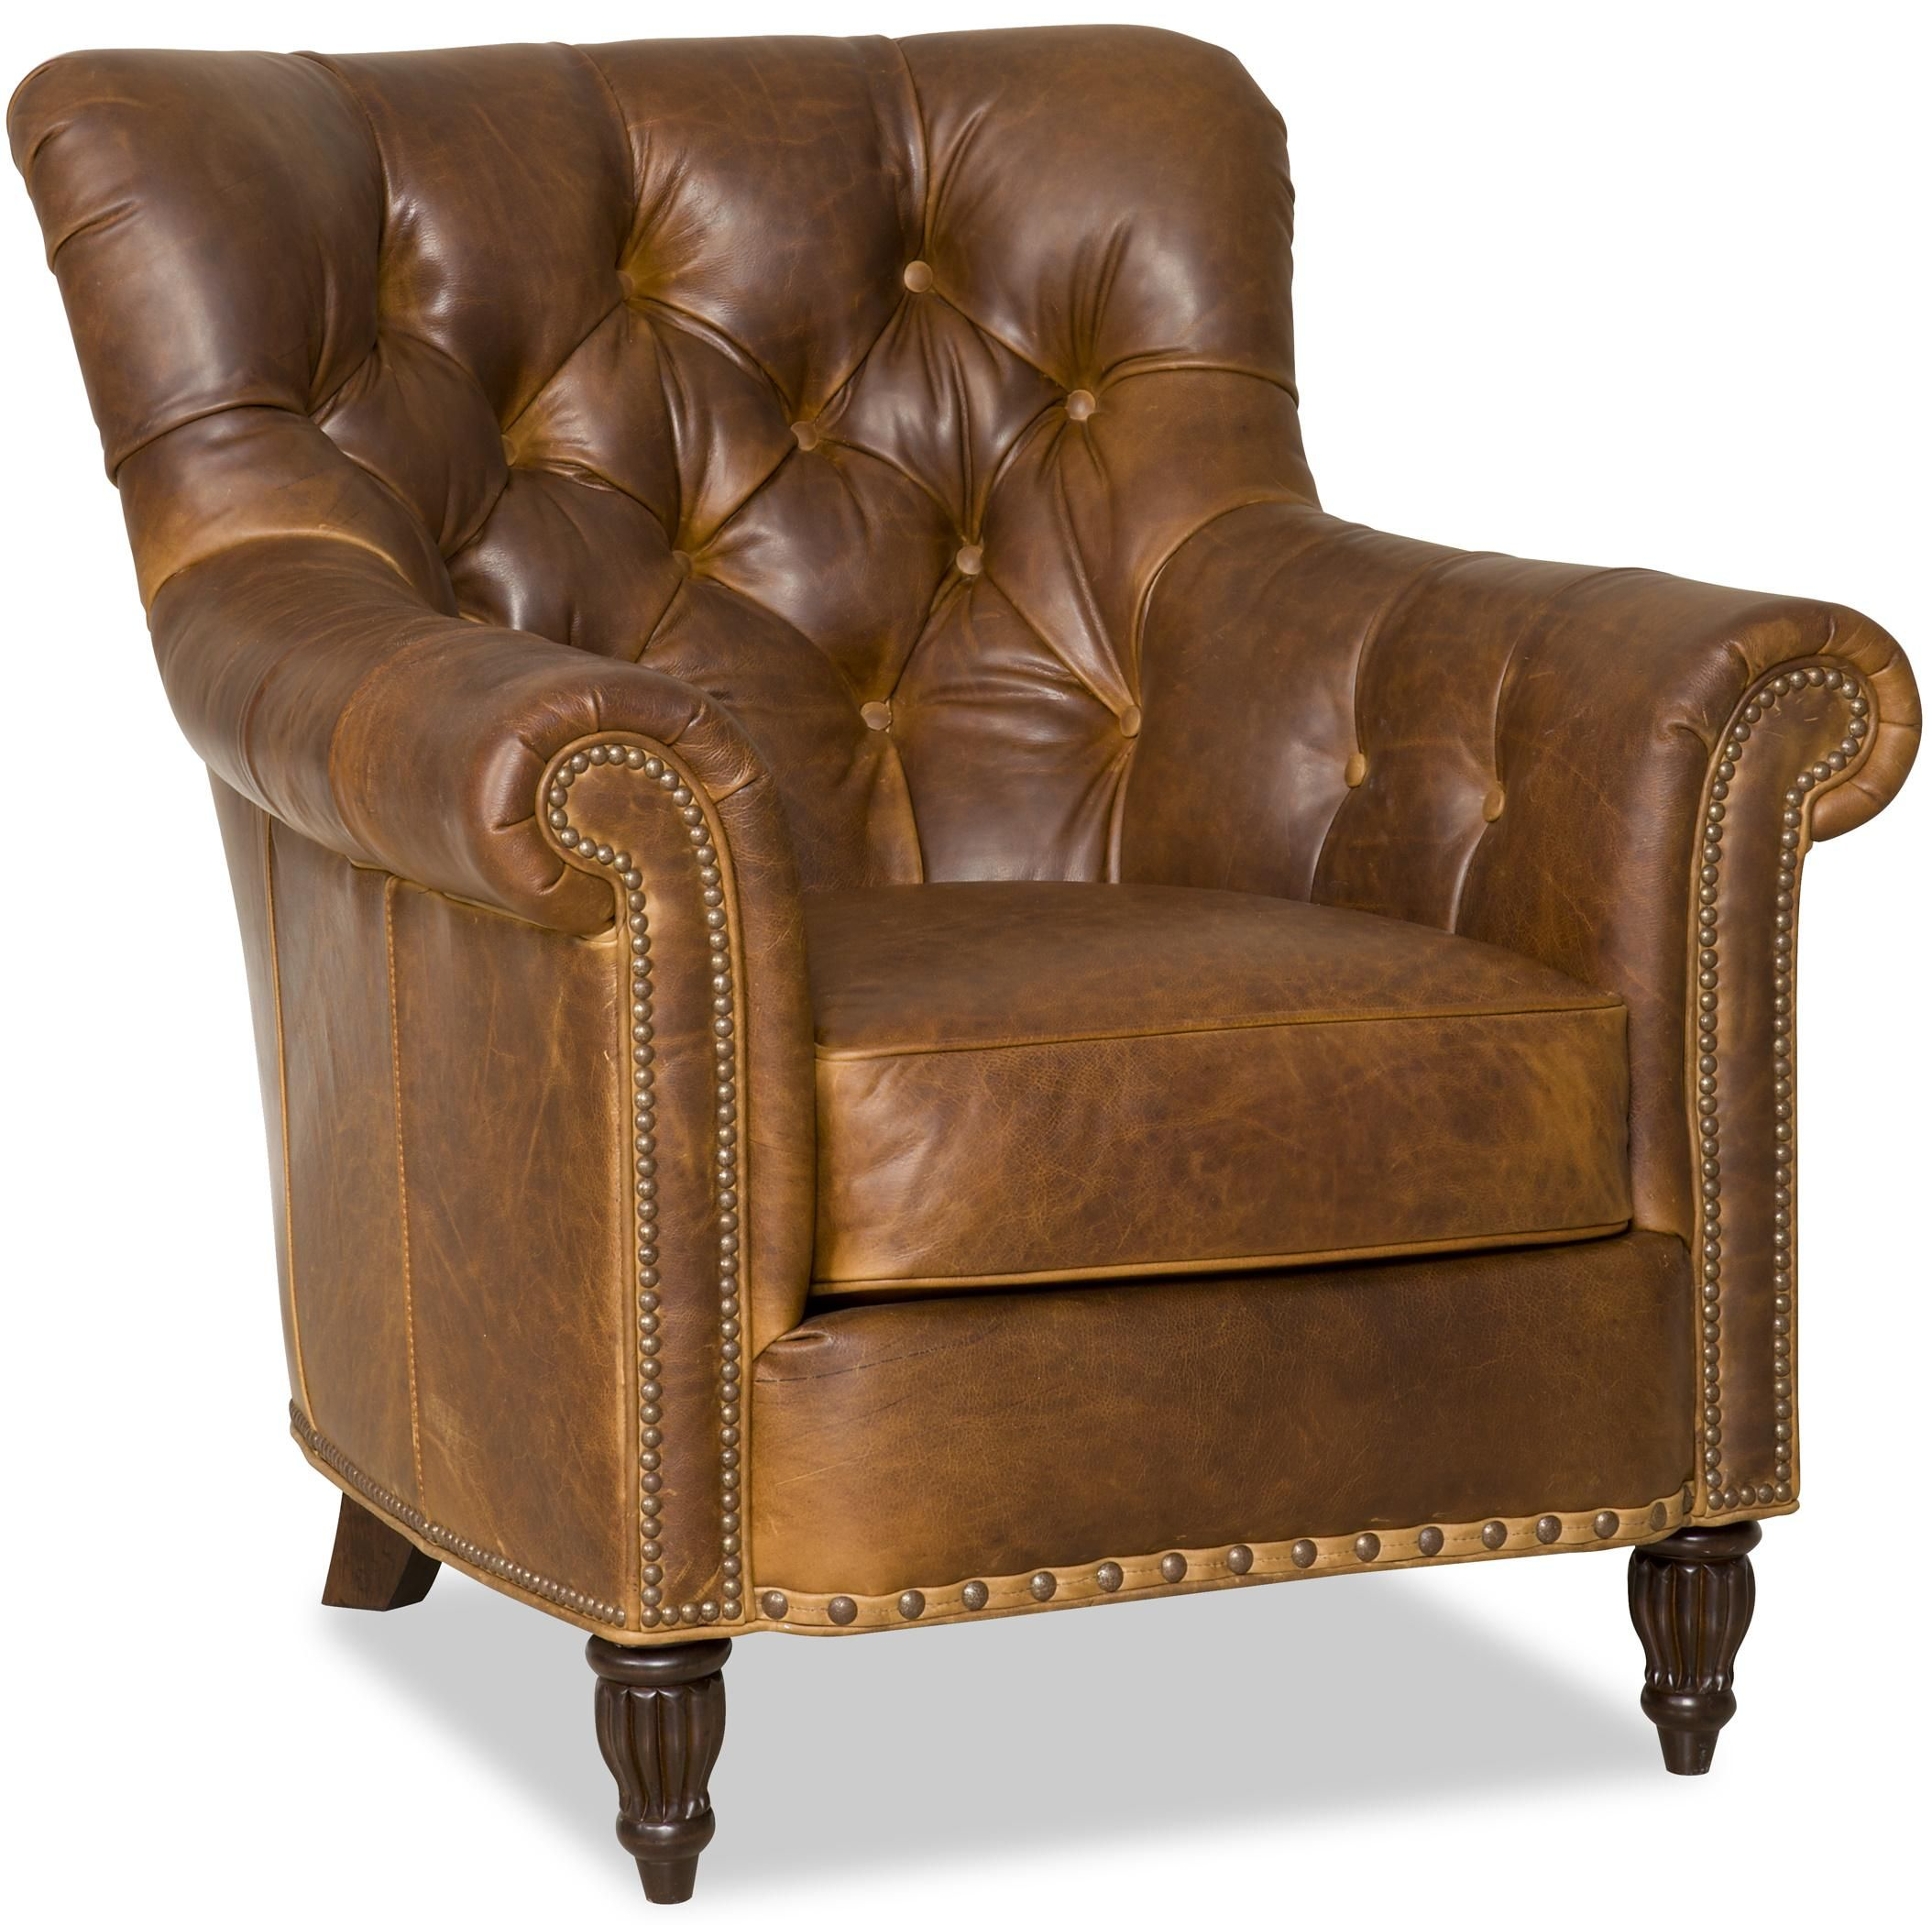 Shop For Bradington Young Kirby Stationary Chair, And Other Living Room  Chairs At Bradington Young In Hickory, NC. The Kirby Stationary Chair Is  Offered In ...